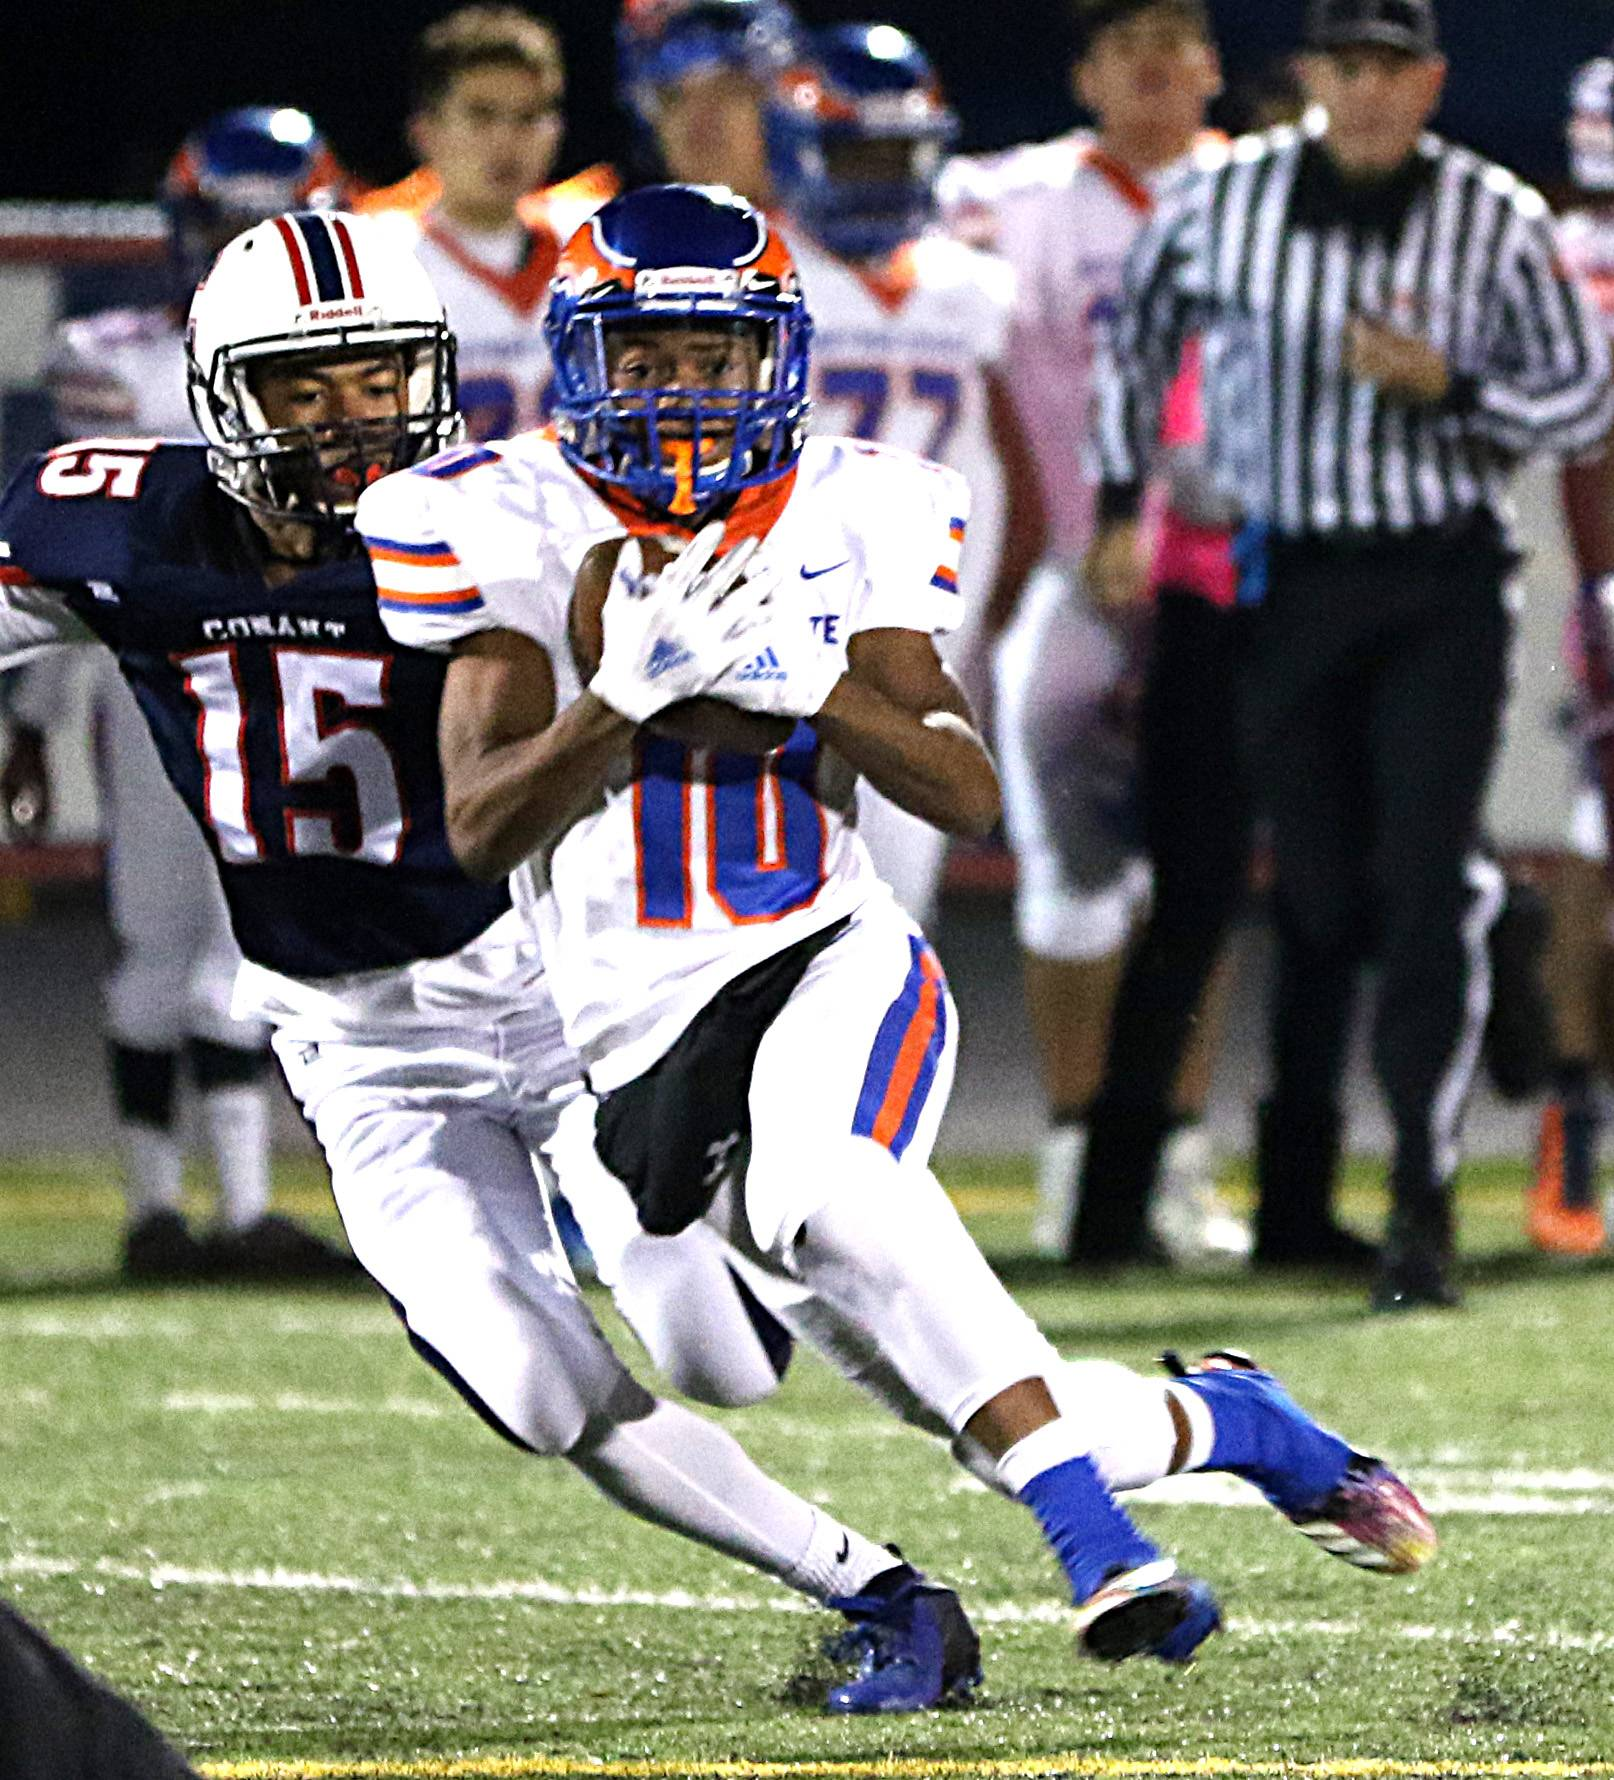 Hoffman Estates' Jashawn Johnson, front, slips past Conant's Ronald Williams.